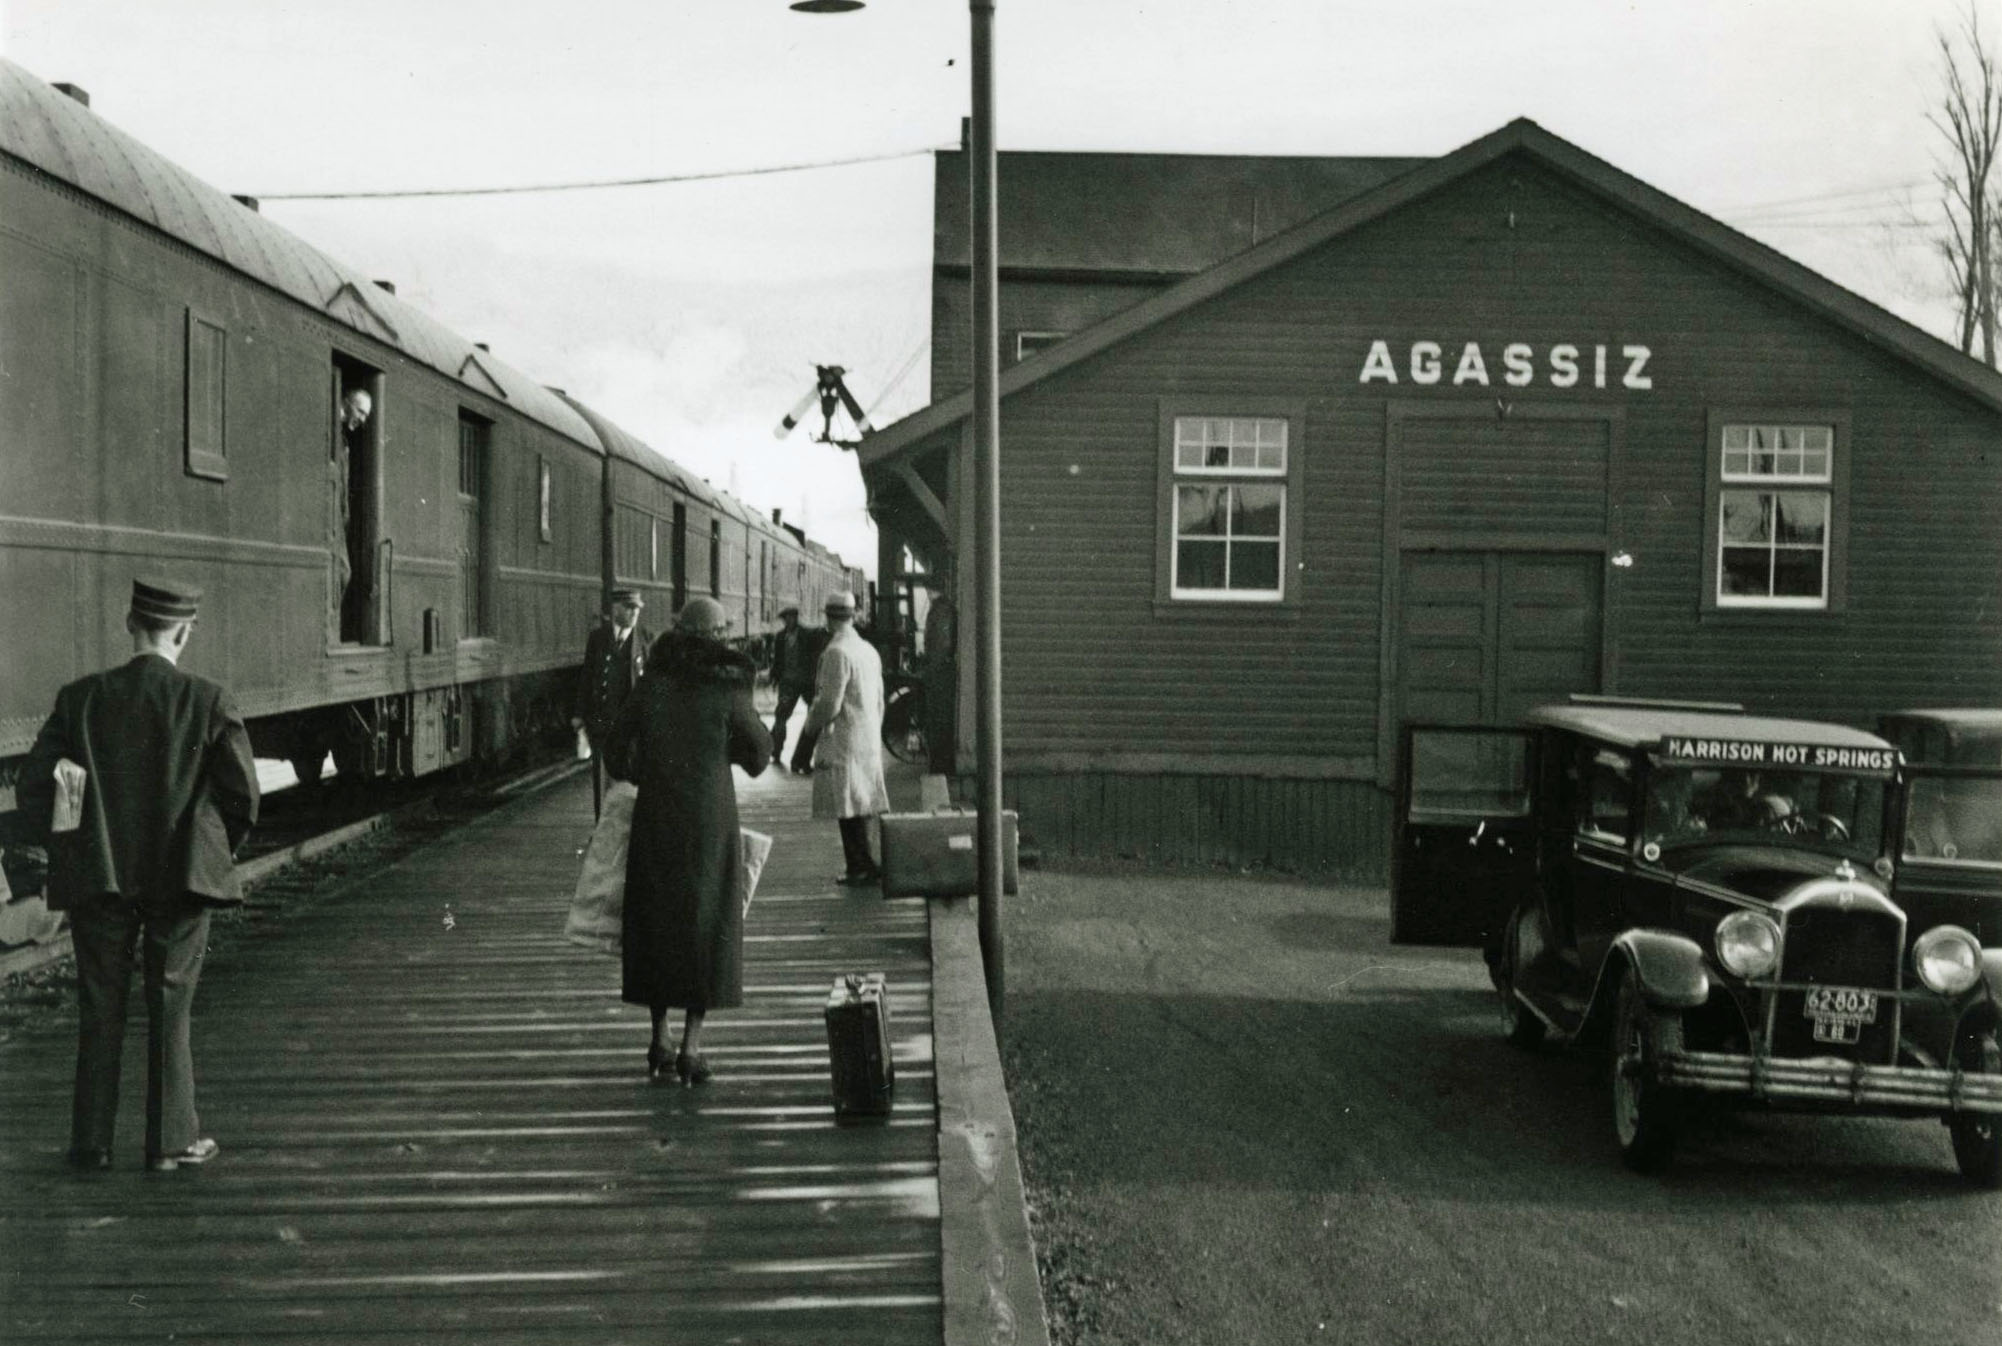 Black and white photograph of a train at the Agassiz station with passengers waiting on a platform. A Harrison Hot Springs taxi is in the foreground.